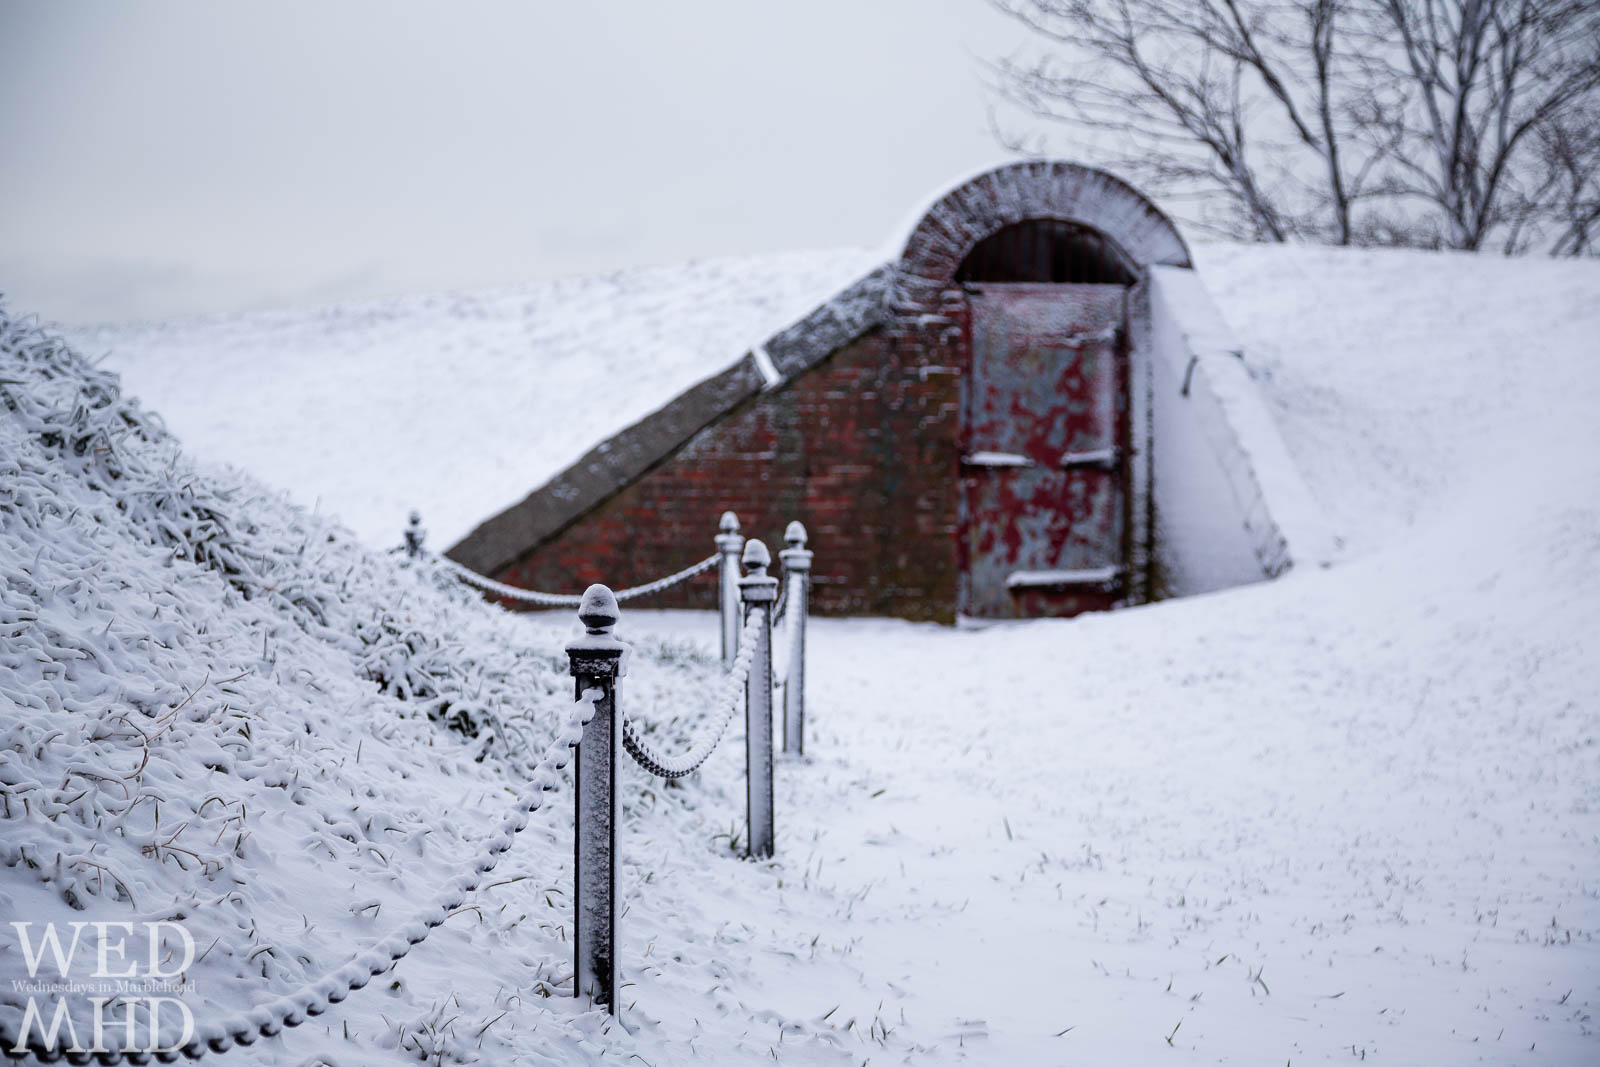 The Red Doors of Fort Sewall in the Snow